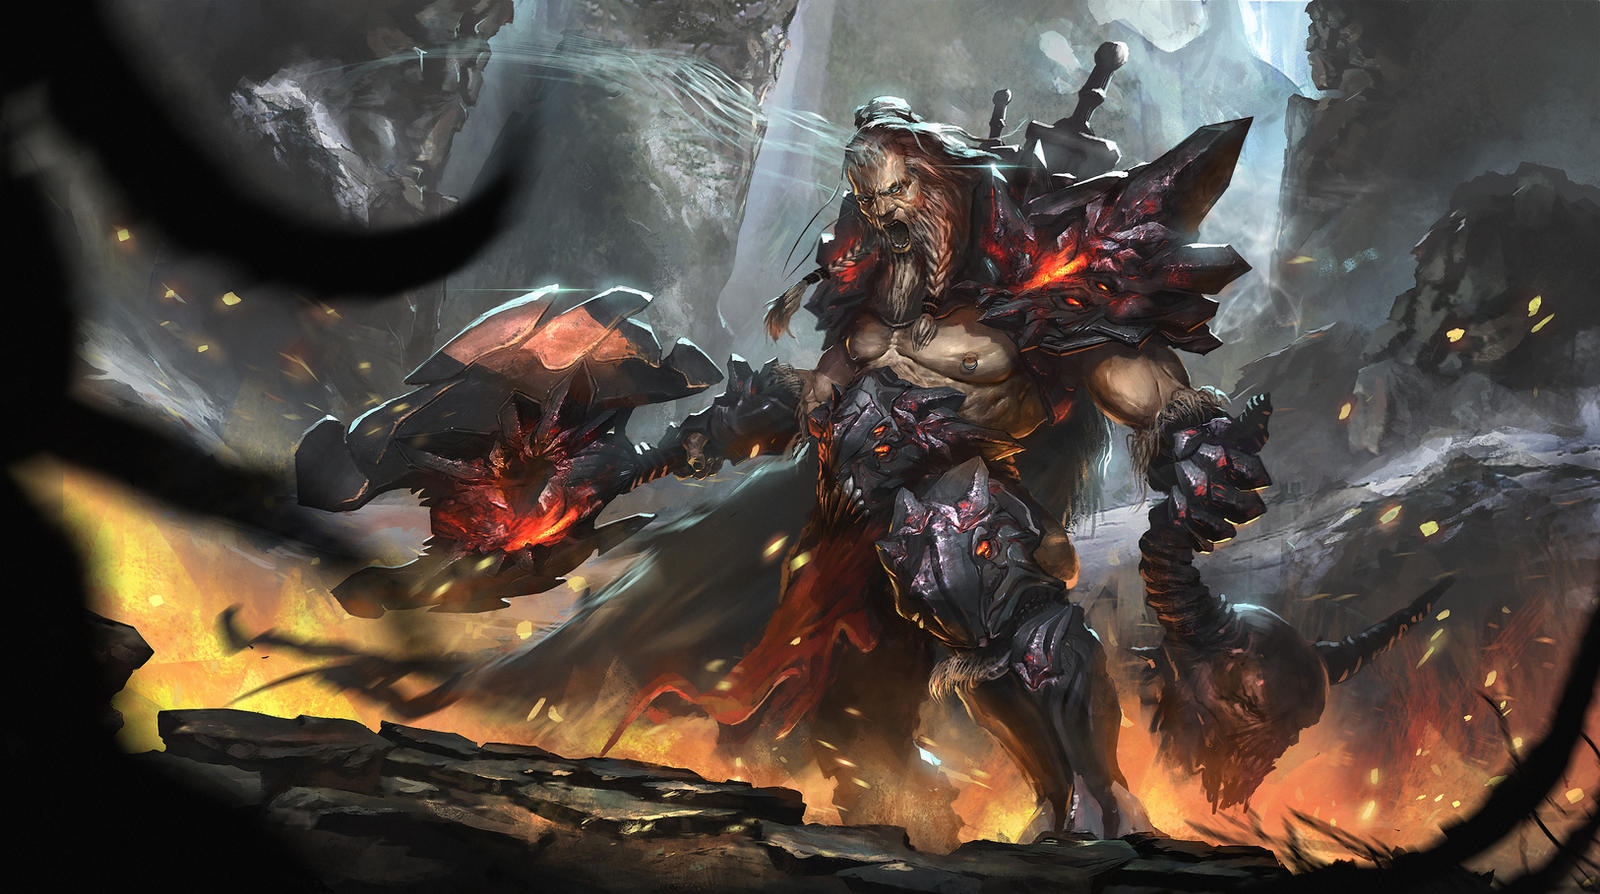 Diablo 3 - Barbarian by Nookiew